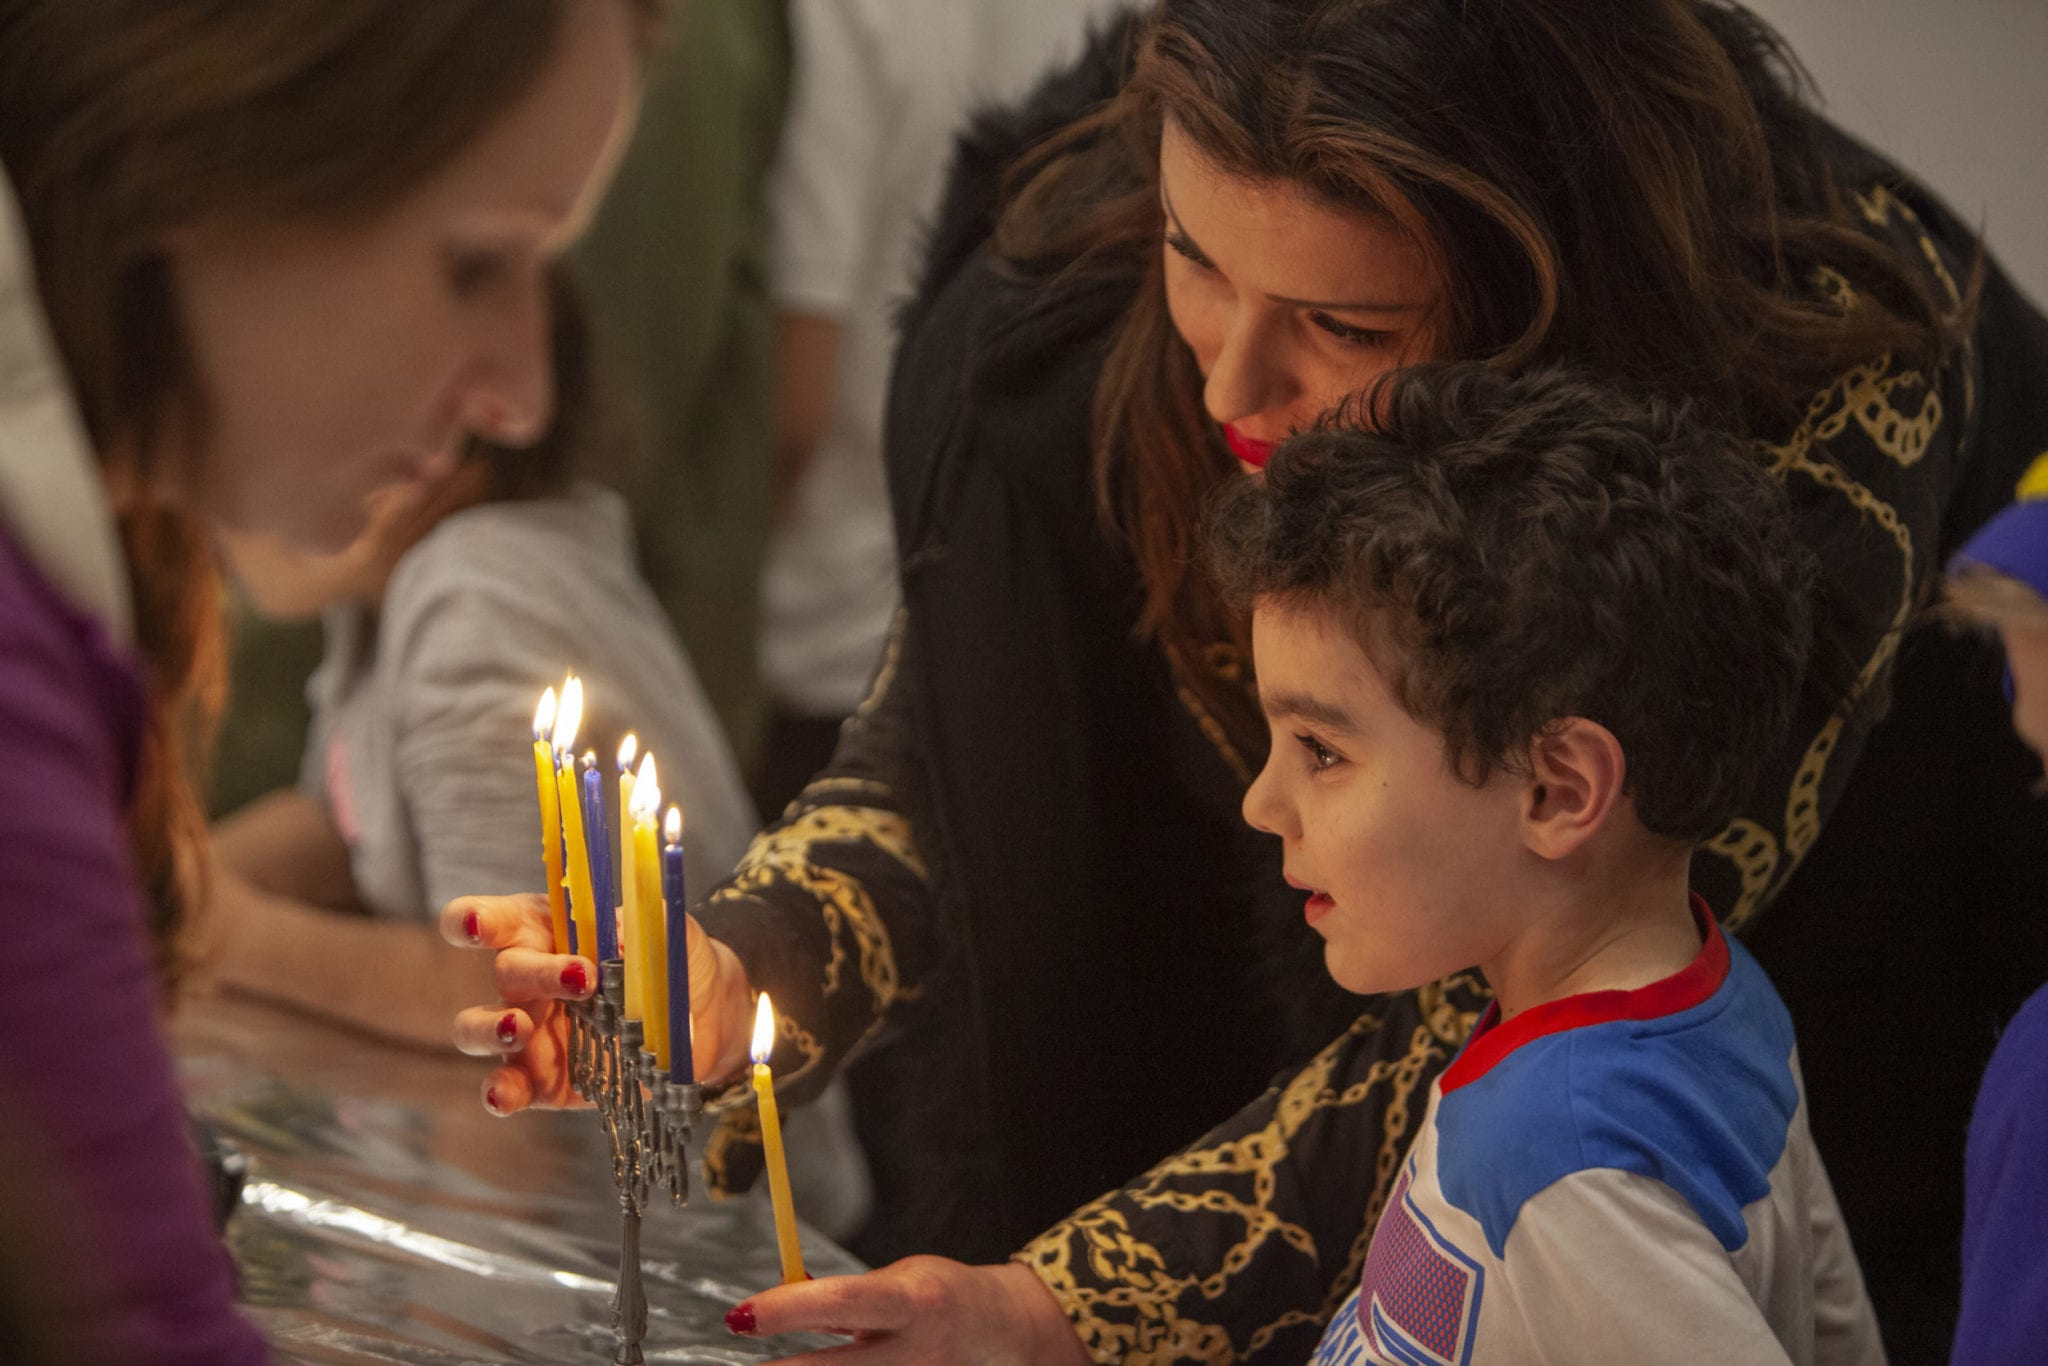 Olgah Goysman and her son Ari light the candles of their family menorah during the children's Hanukkah festival at Chabad Jewish Center on Dec 9. Photo by Jacob Granneman